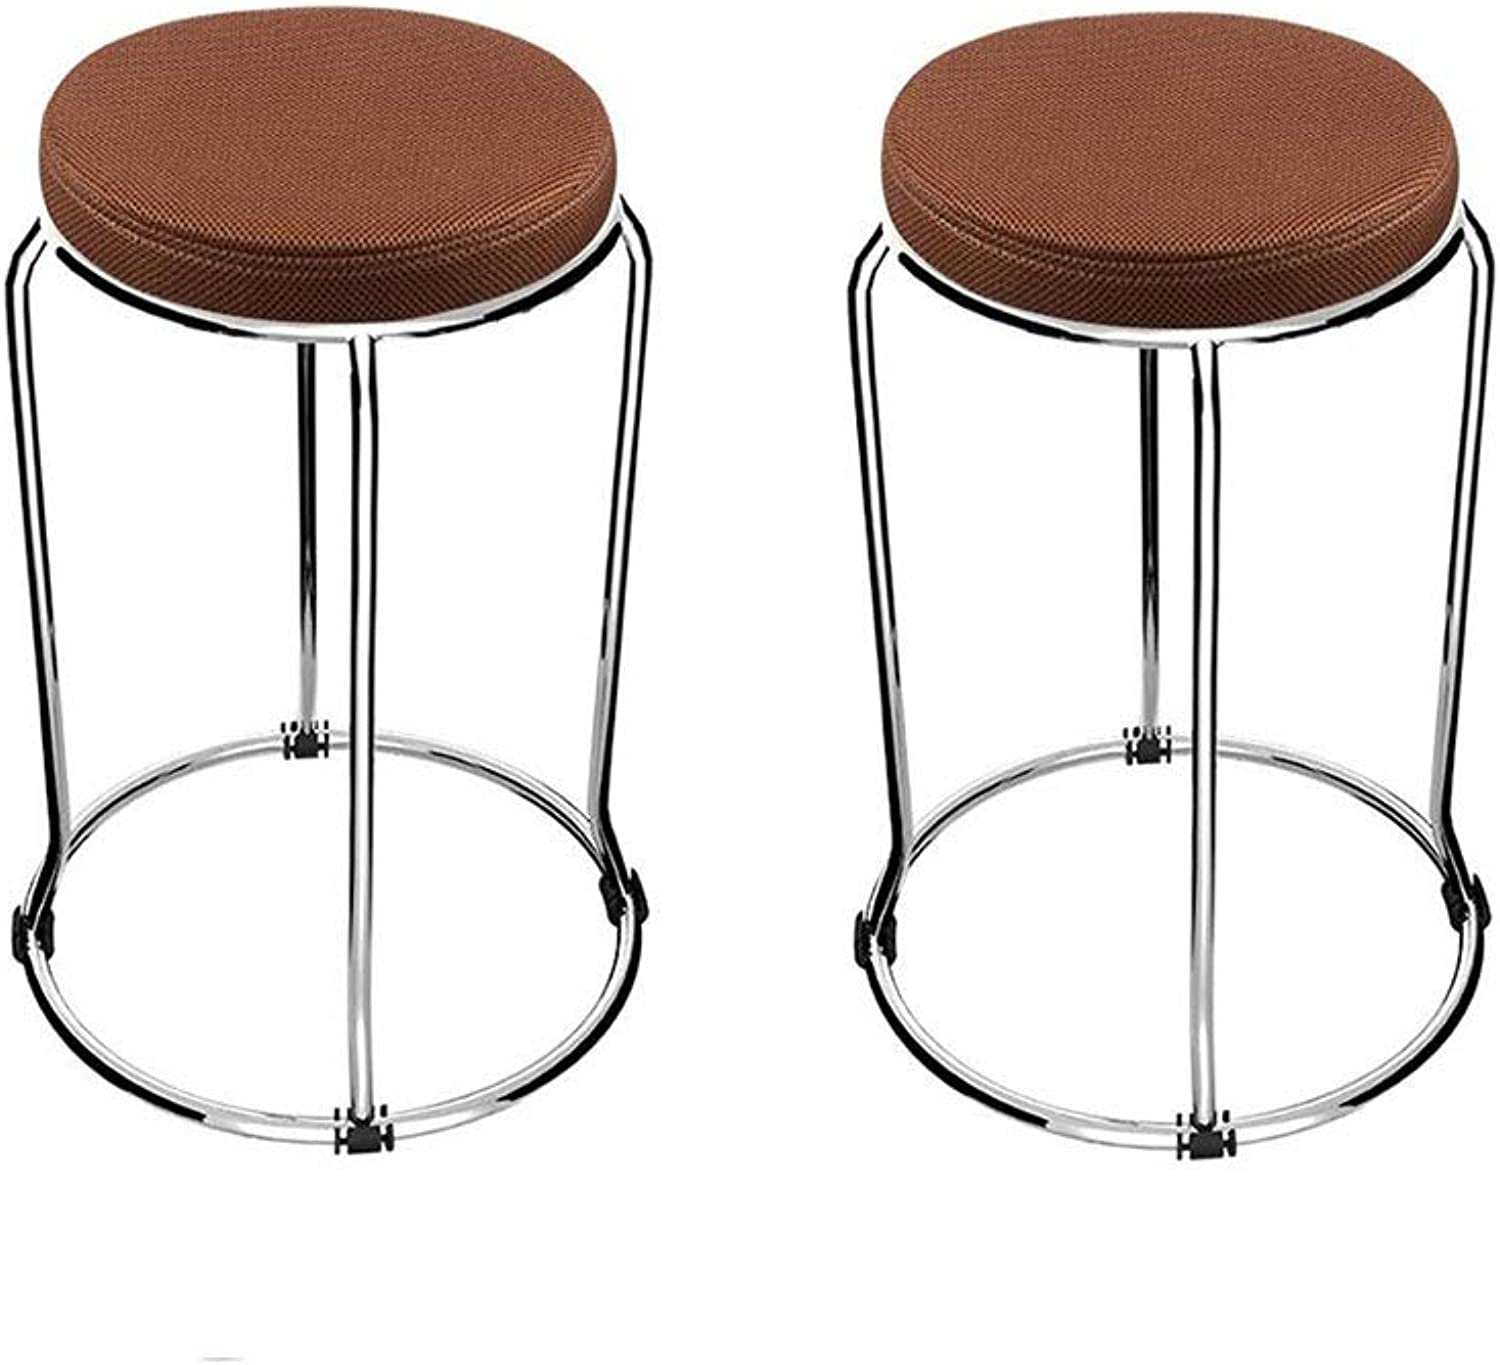 YCSD Simple Stainless Steel Stool Dining Stool Cloth Small Stool Reinforced Thick Mesh Stool Stackable Low Stool (color   Coffee color)